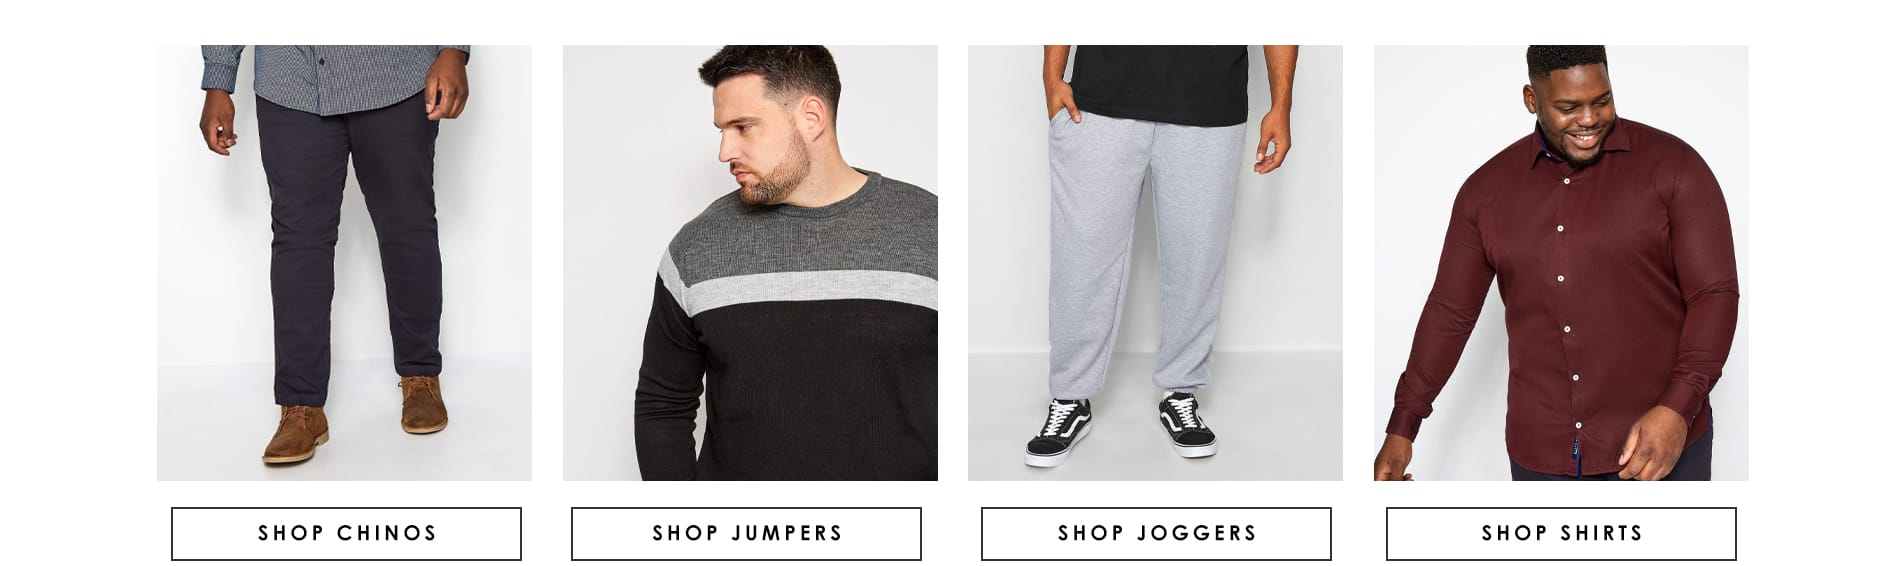 Chinos/Jumpers/Joggers/Shirts